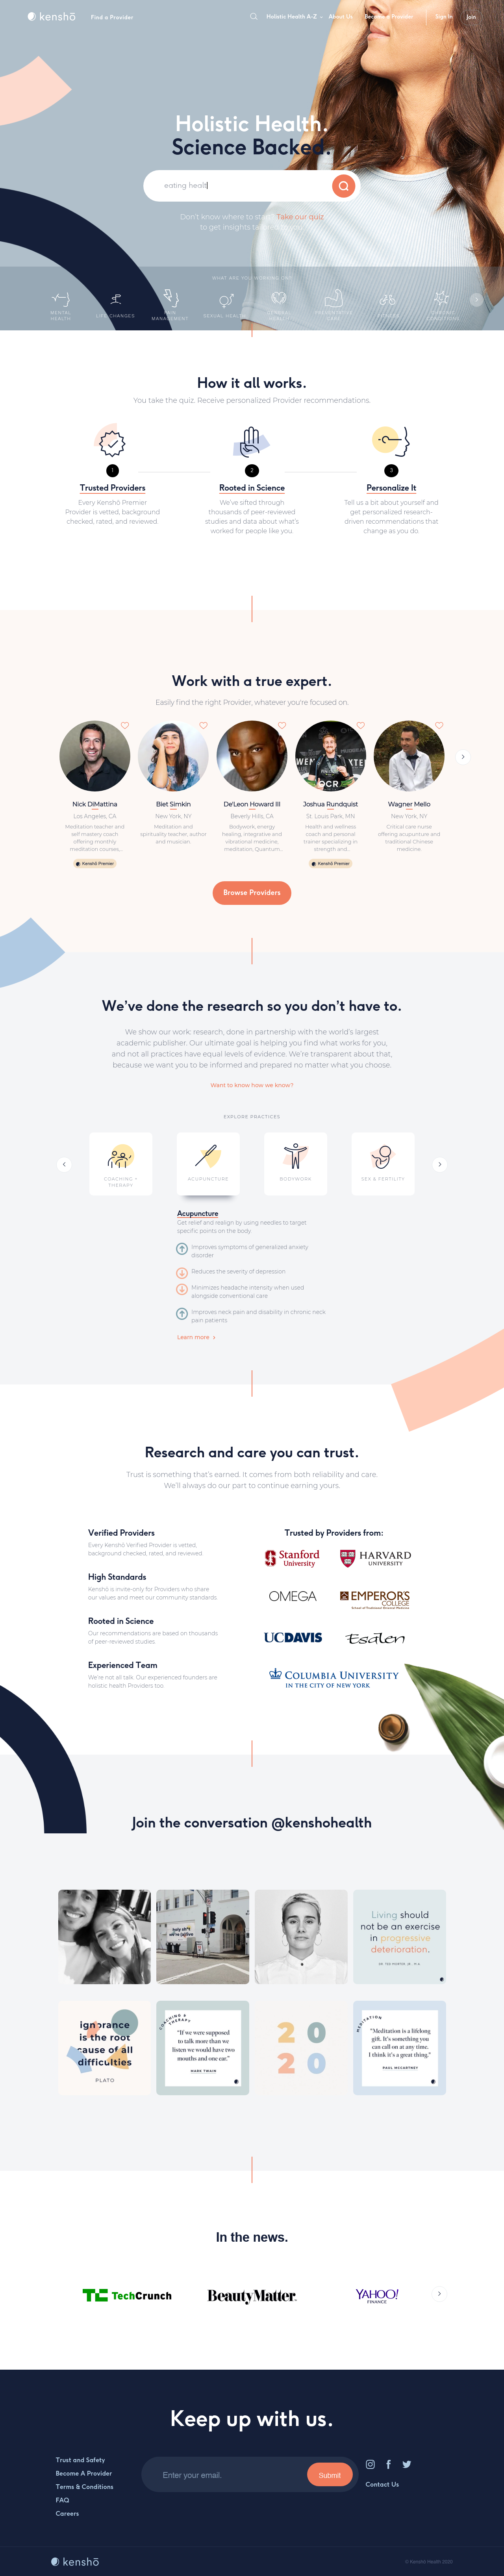 Example of Design for Health, Landing Page by kenshohealth.com | Landing Page Design